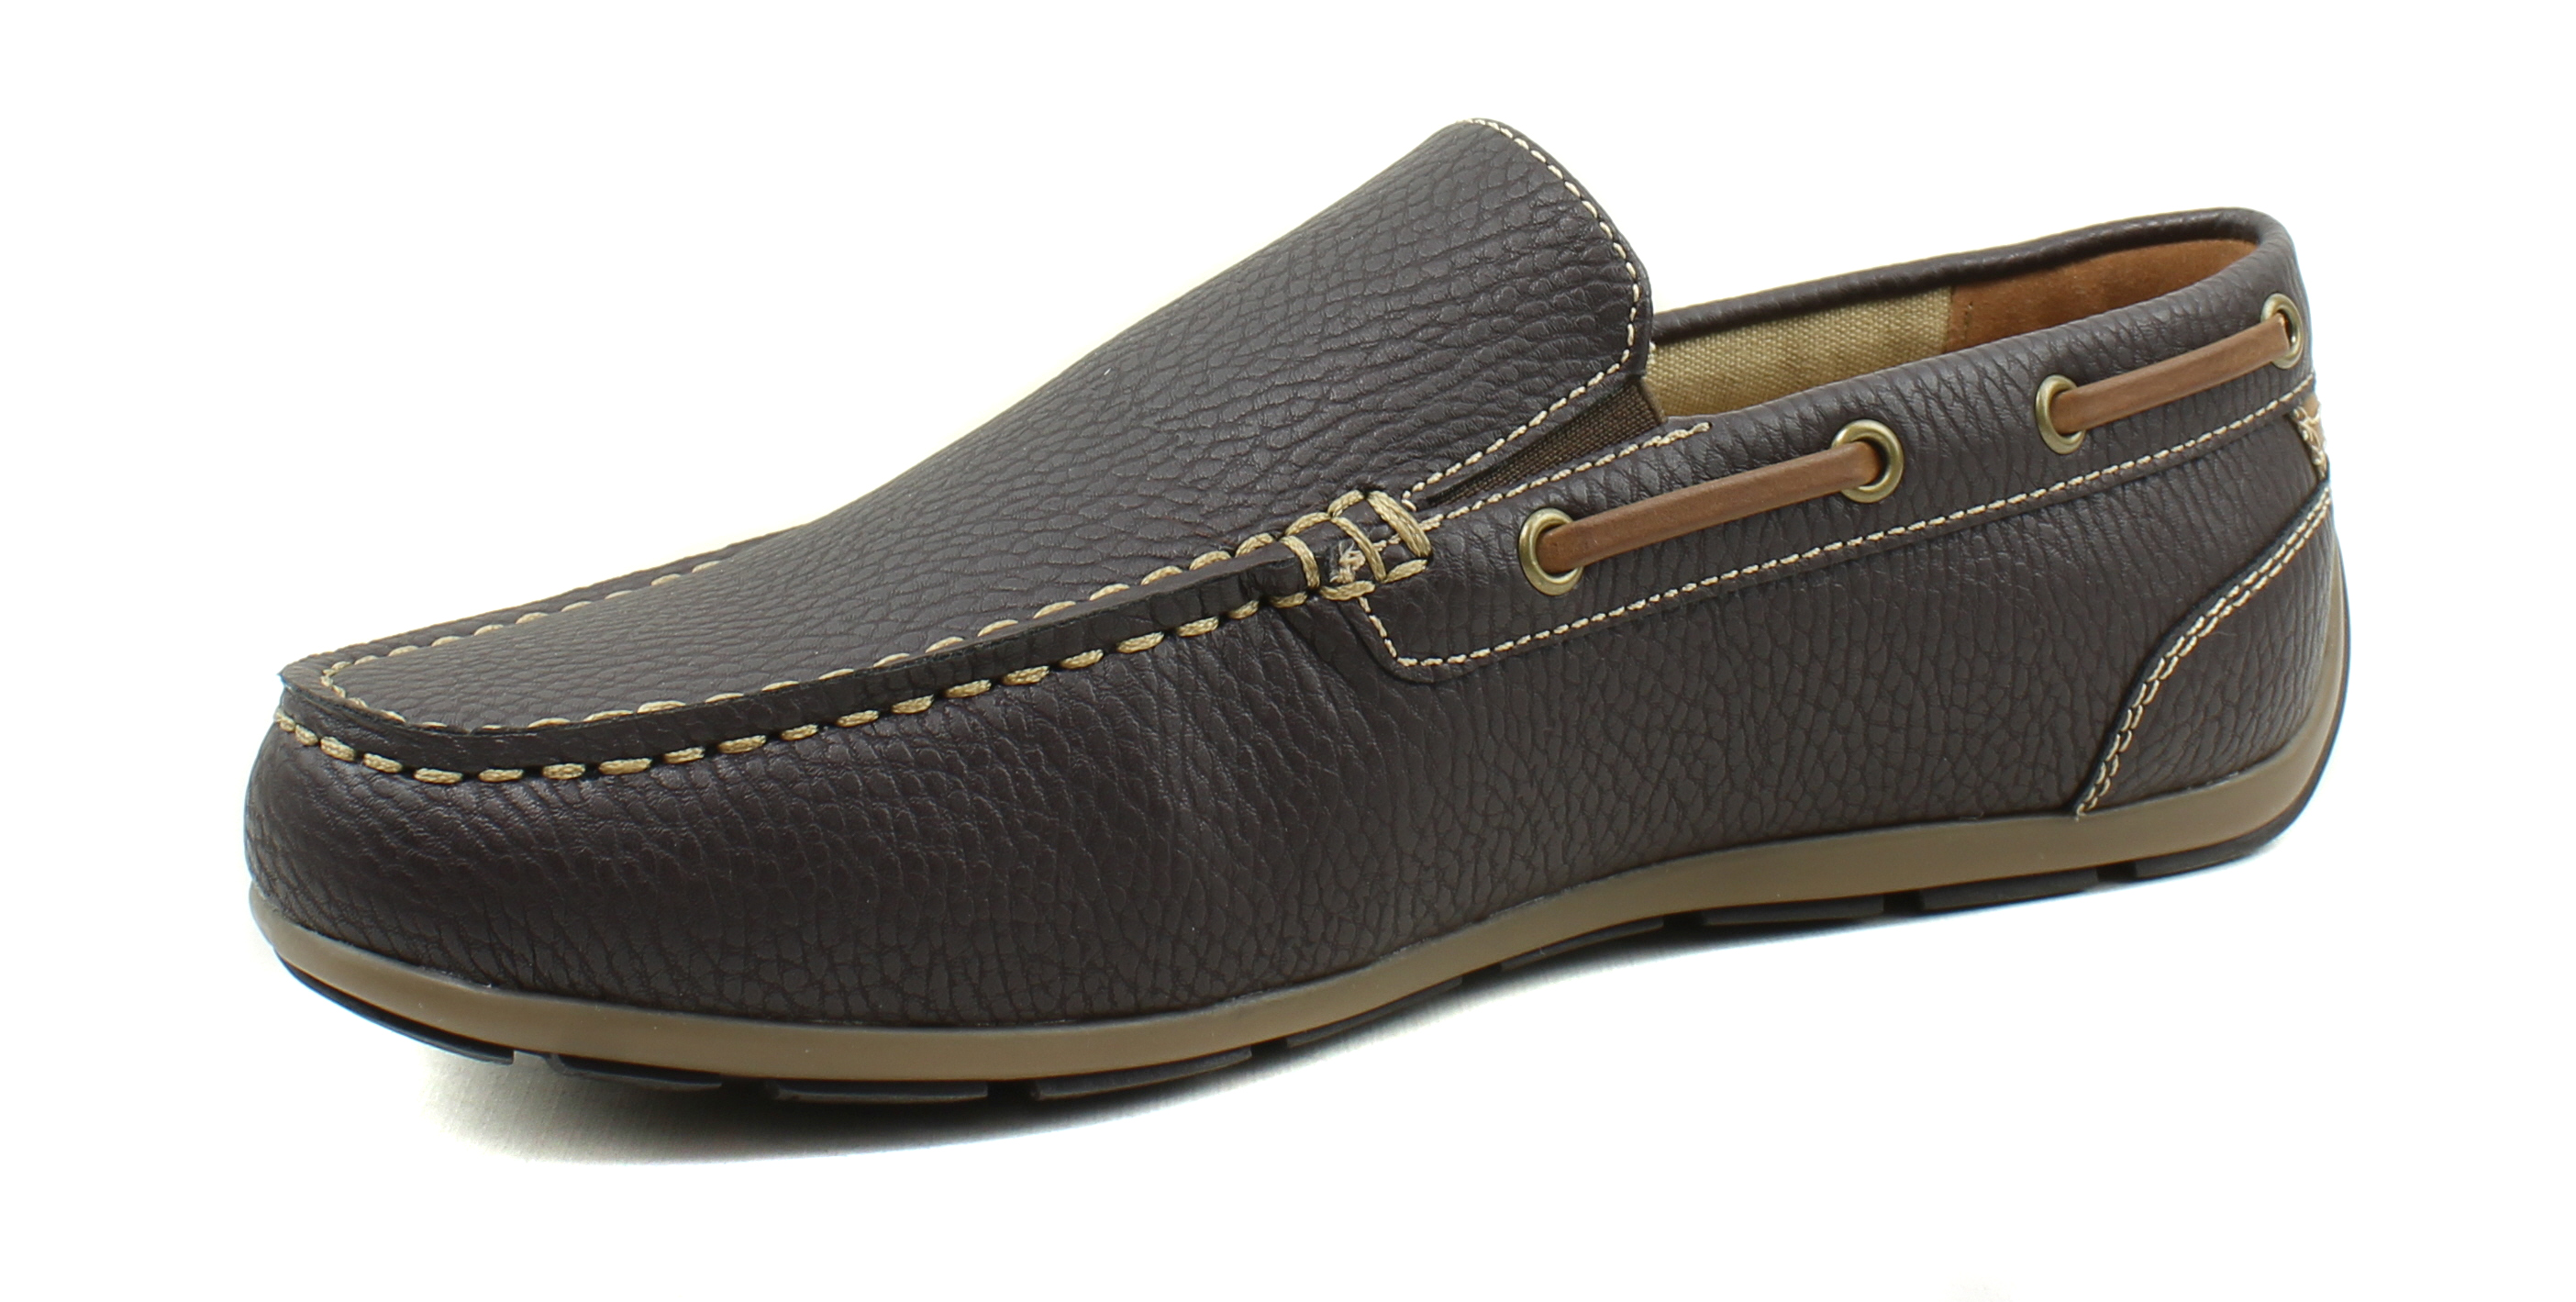 GBX-Homme-Ludlam-Casual-Moc-toe-Slip-on-Chaussures-Bateau-Driving-Loafers miniature 11